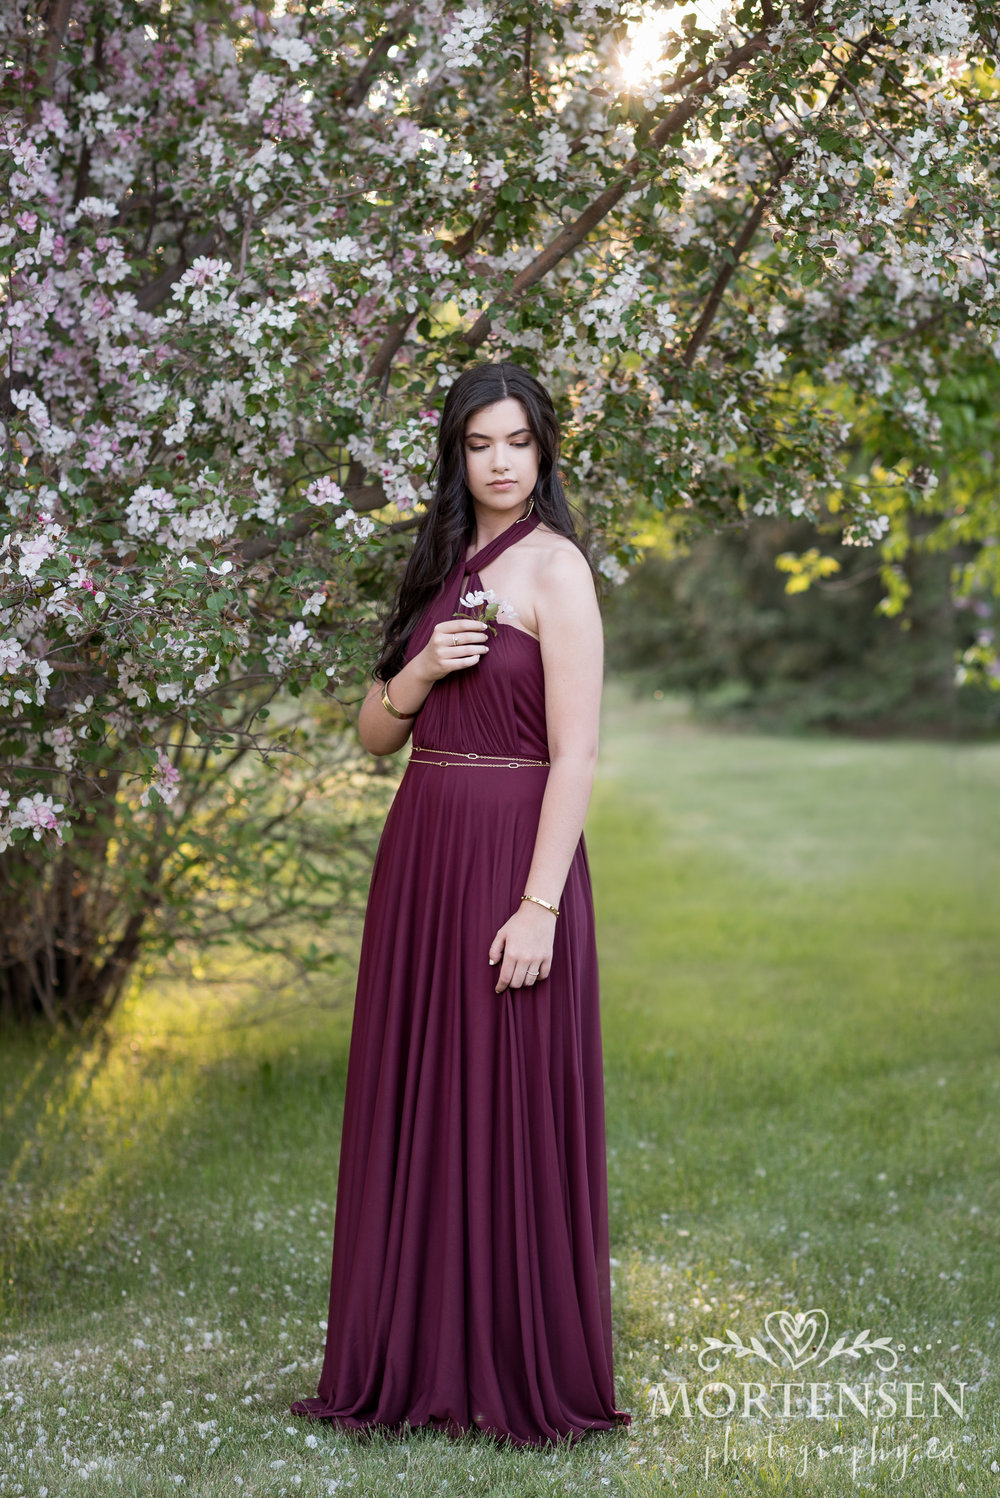 calgary high school graduation portrait photographer yyc womens glamour beauty photography